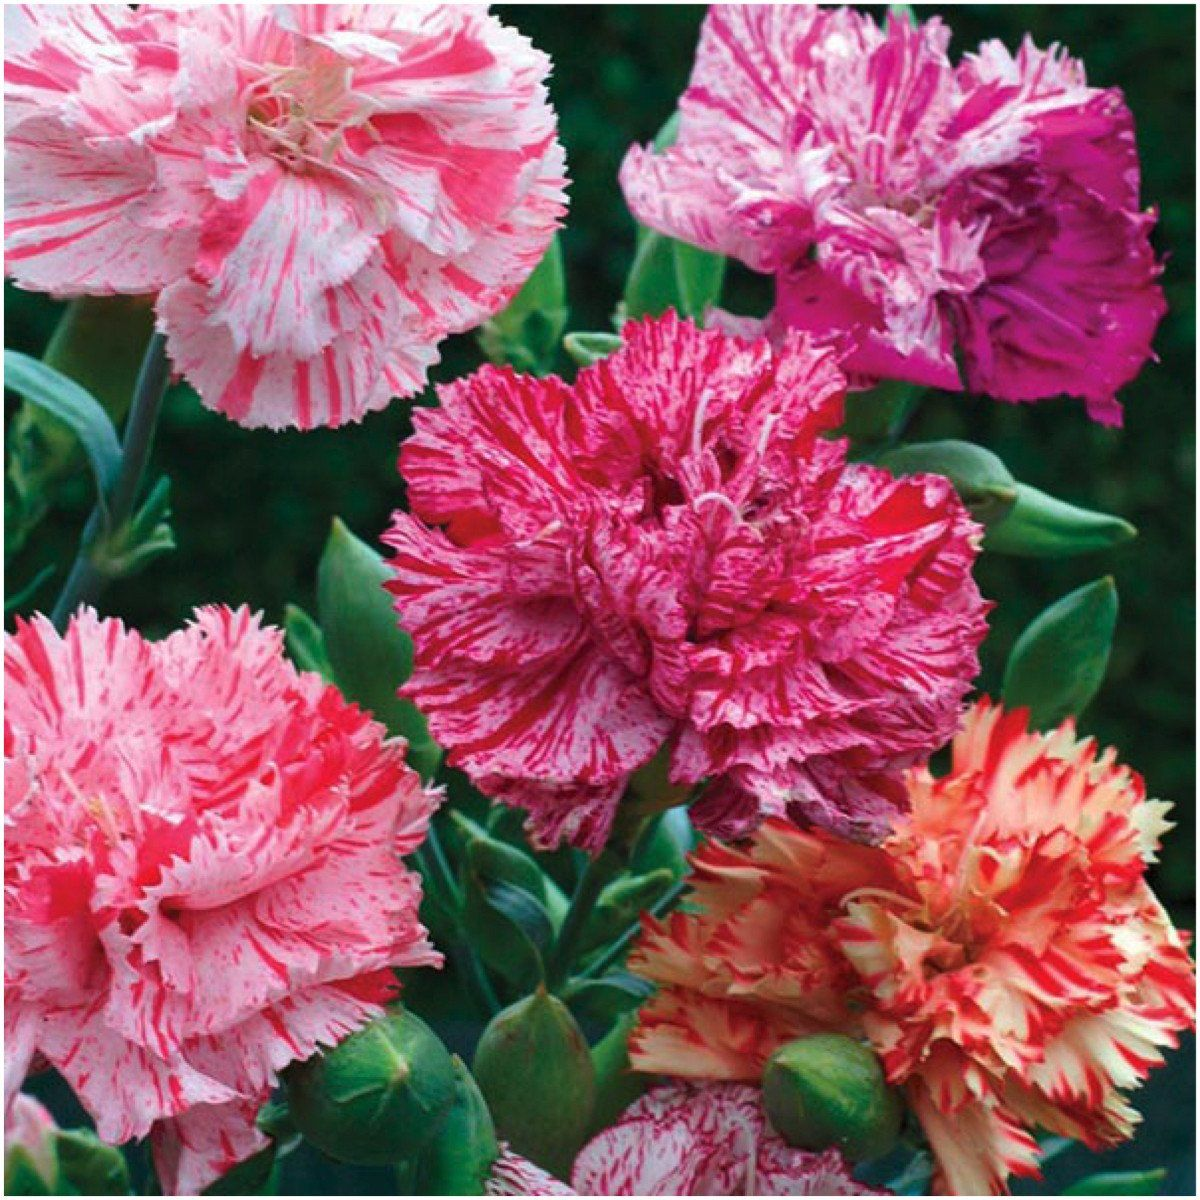 Picotee Carnation Flower Seeds Flower Seed Gifts Flowers Perennials